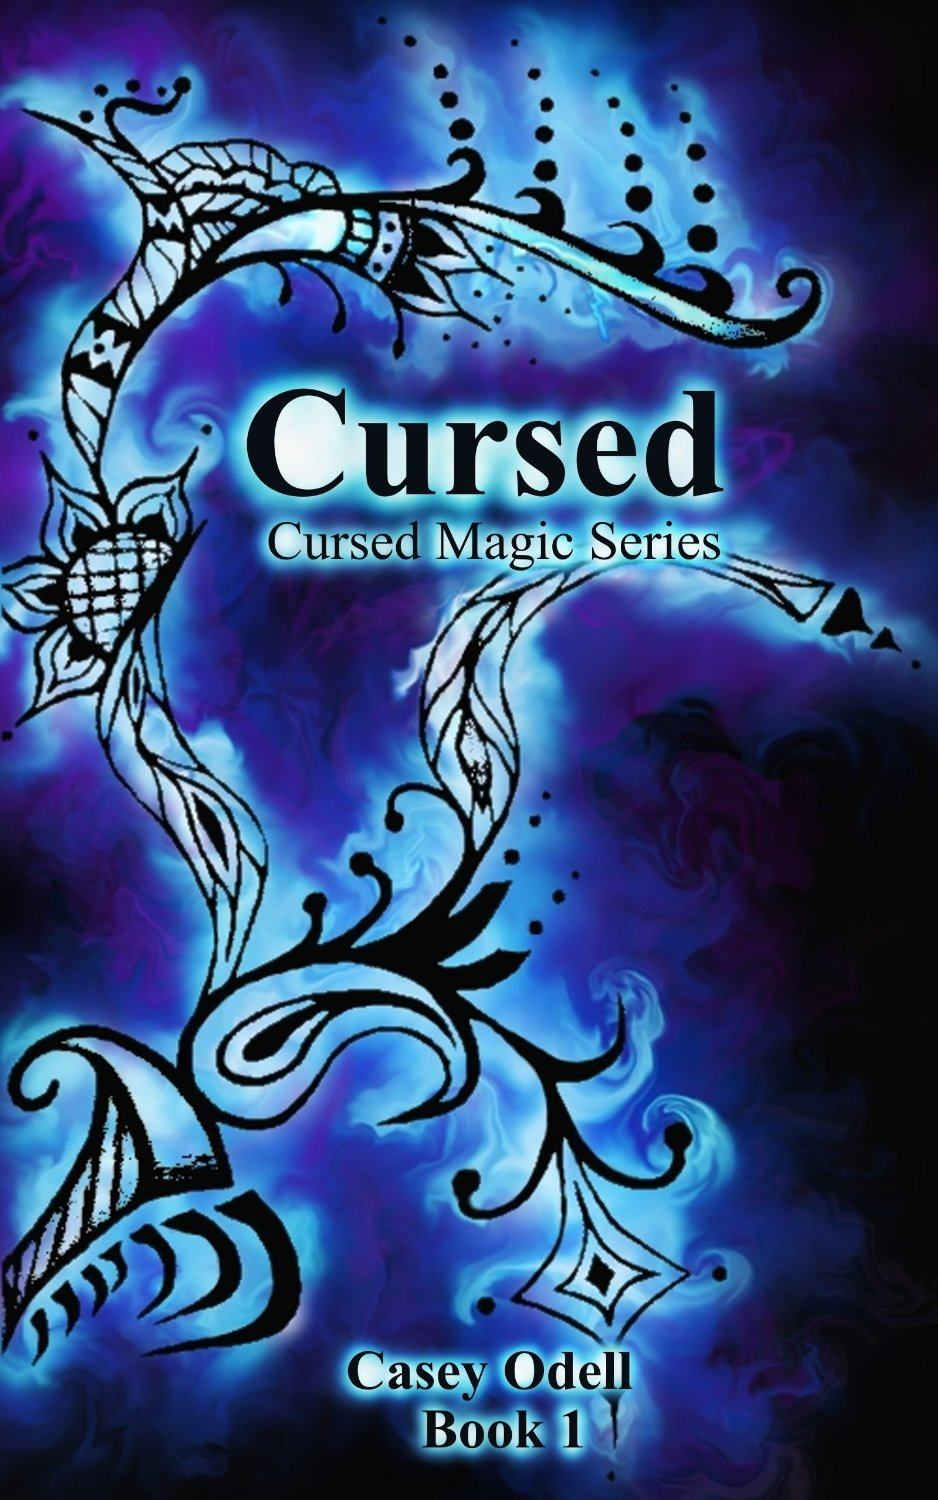 Cursed, Book 1 by Casey Odell